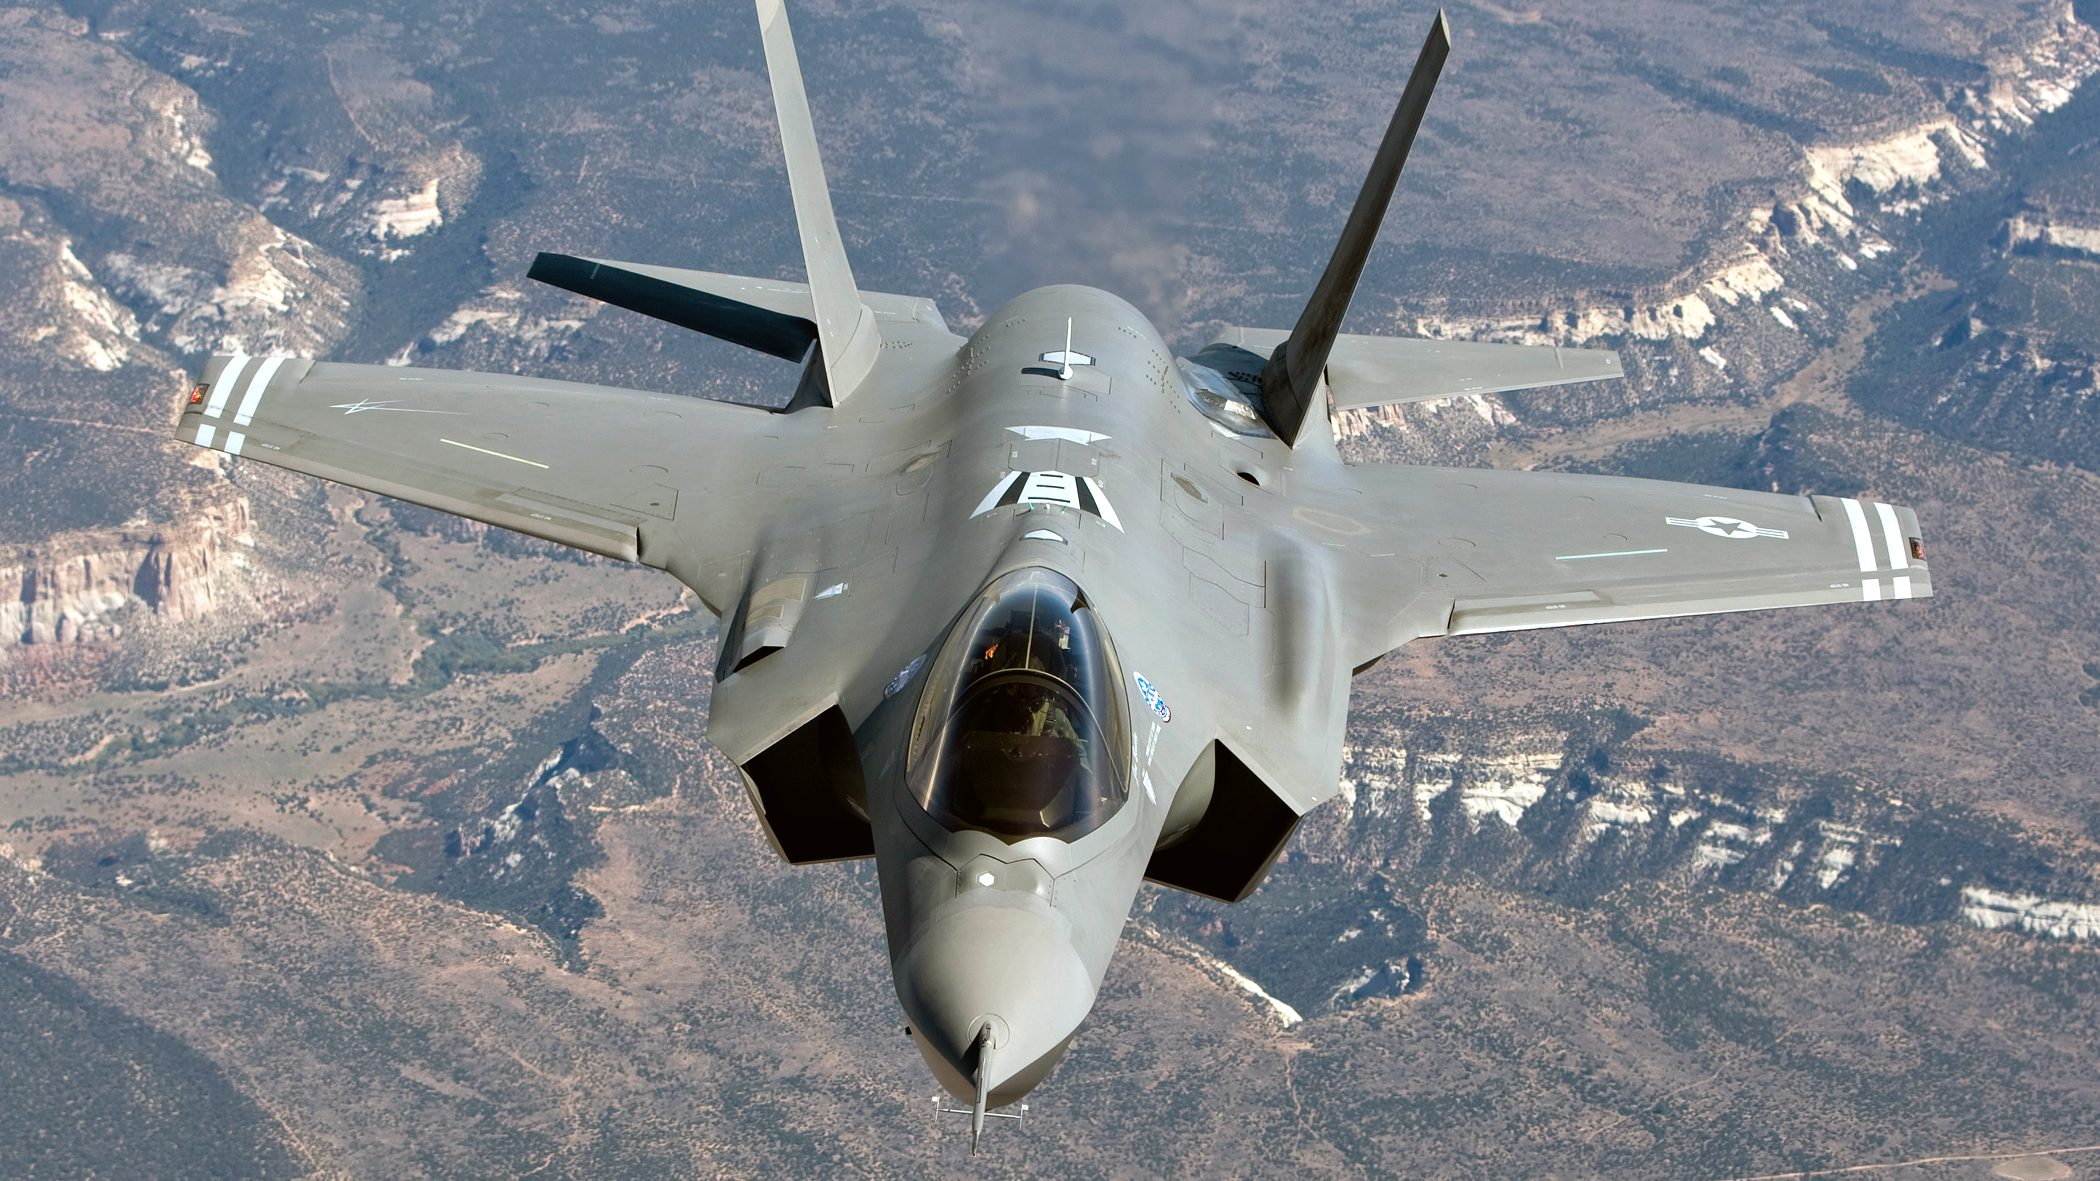 An undated file picture made available on 25 September 2014 shows a F-35A fighter jet flying at an unknown location. South Korea said on 24 September 2014, it has decided to purchase 40 F-35A fighter jets from the US defense firm Lockheed Martin in a deal worth 7.04 billion US dollar. Under the deal, Lockheed Martin will transfer fighter production technologies in 17 sectors to be used for South Korea's project to develop an indigenous next-generation fighter jet, the South Korean Defense Acquisition Program Administration (DAPA) said.